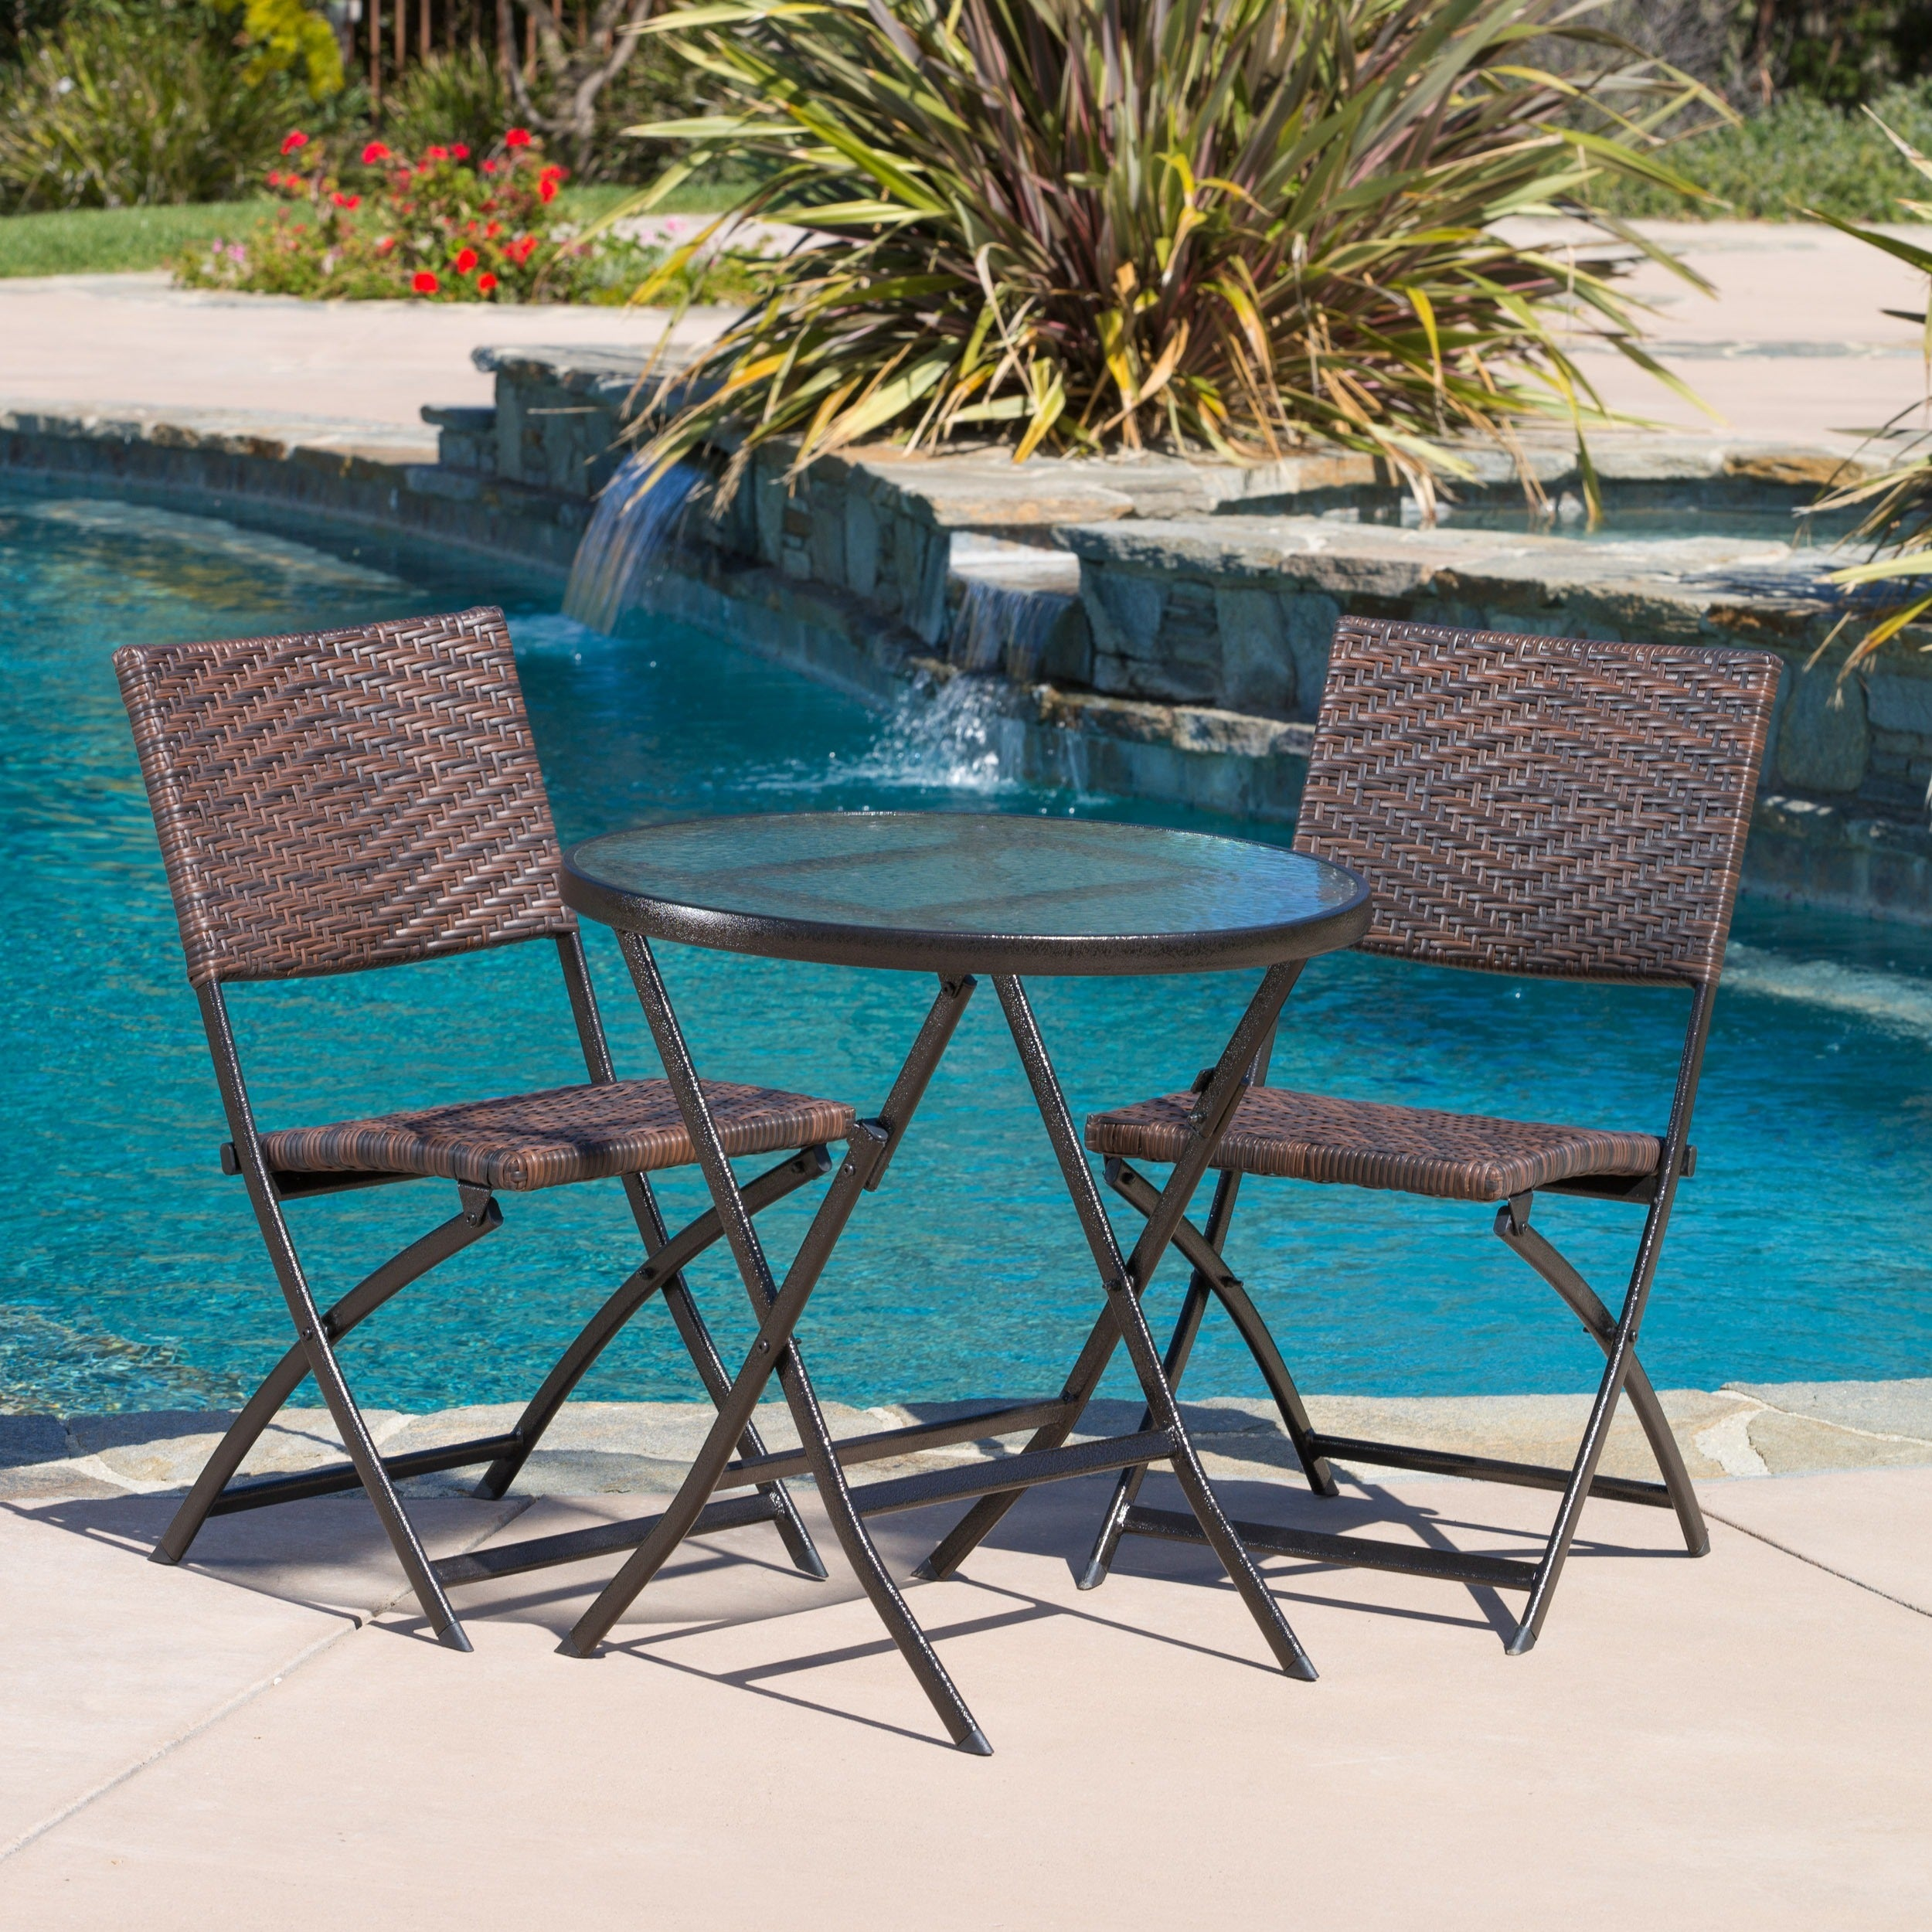 3 piece folding portable patio bistro chair table outdoor